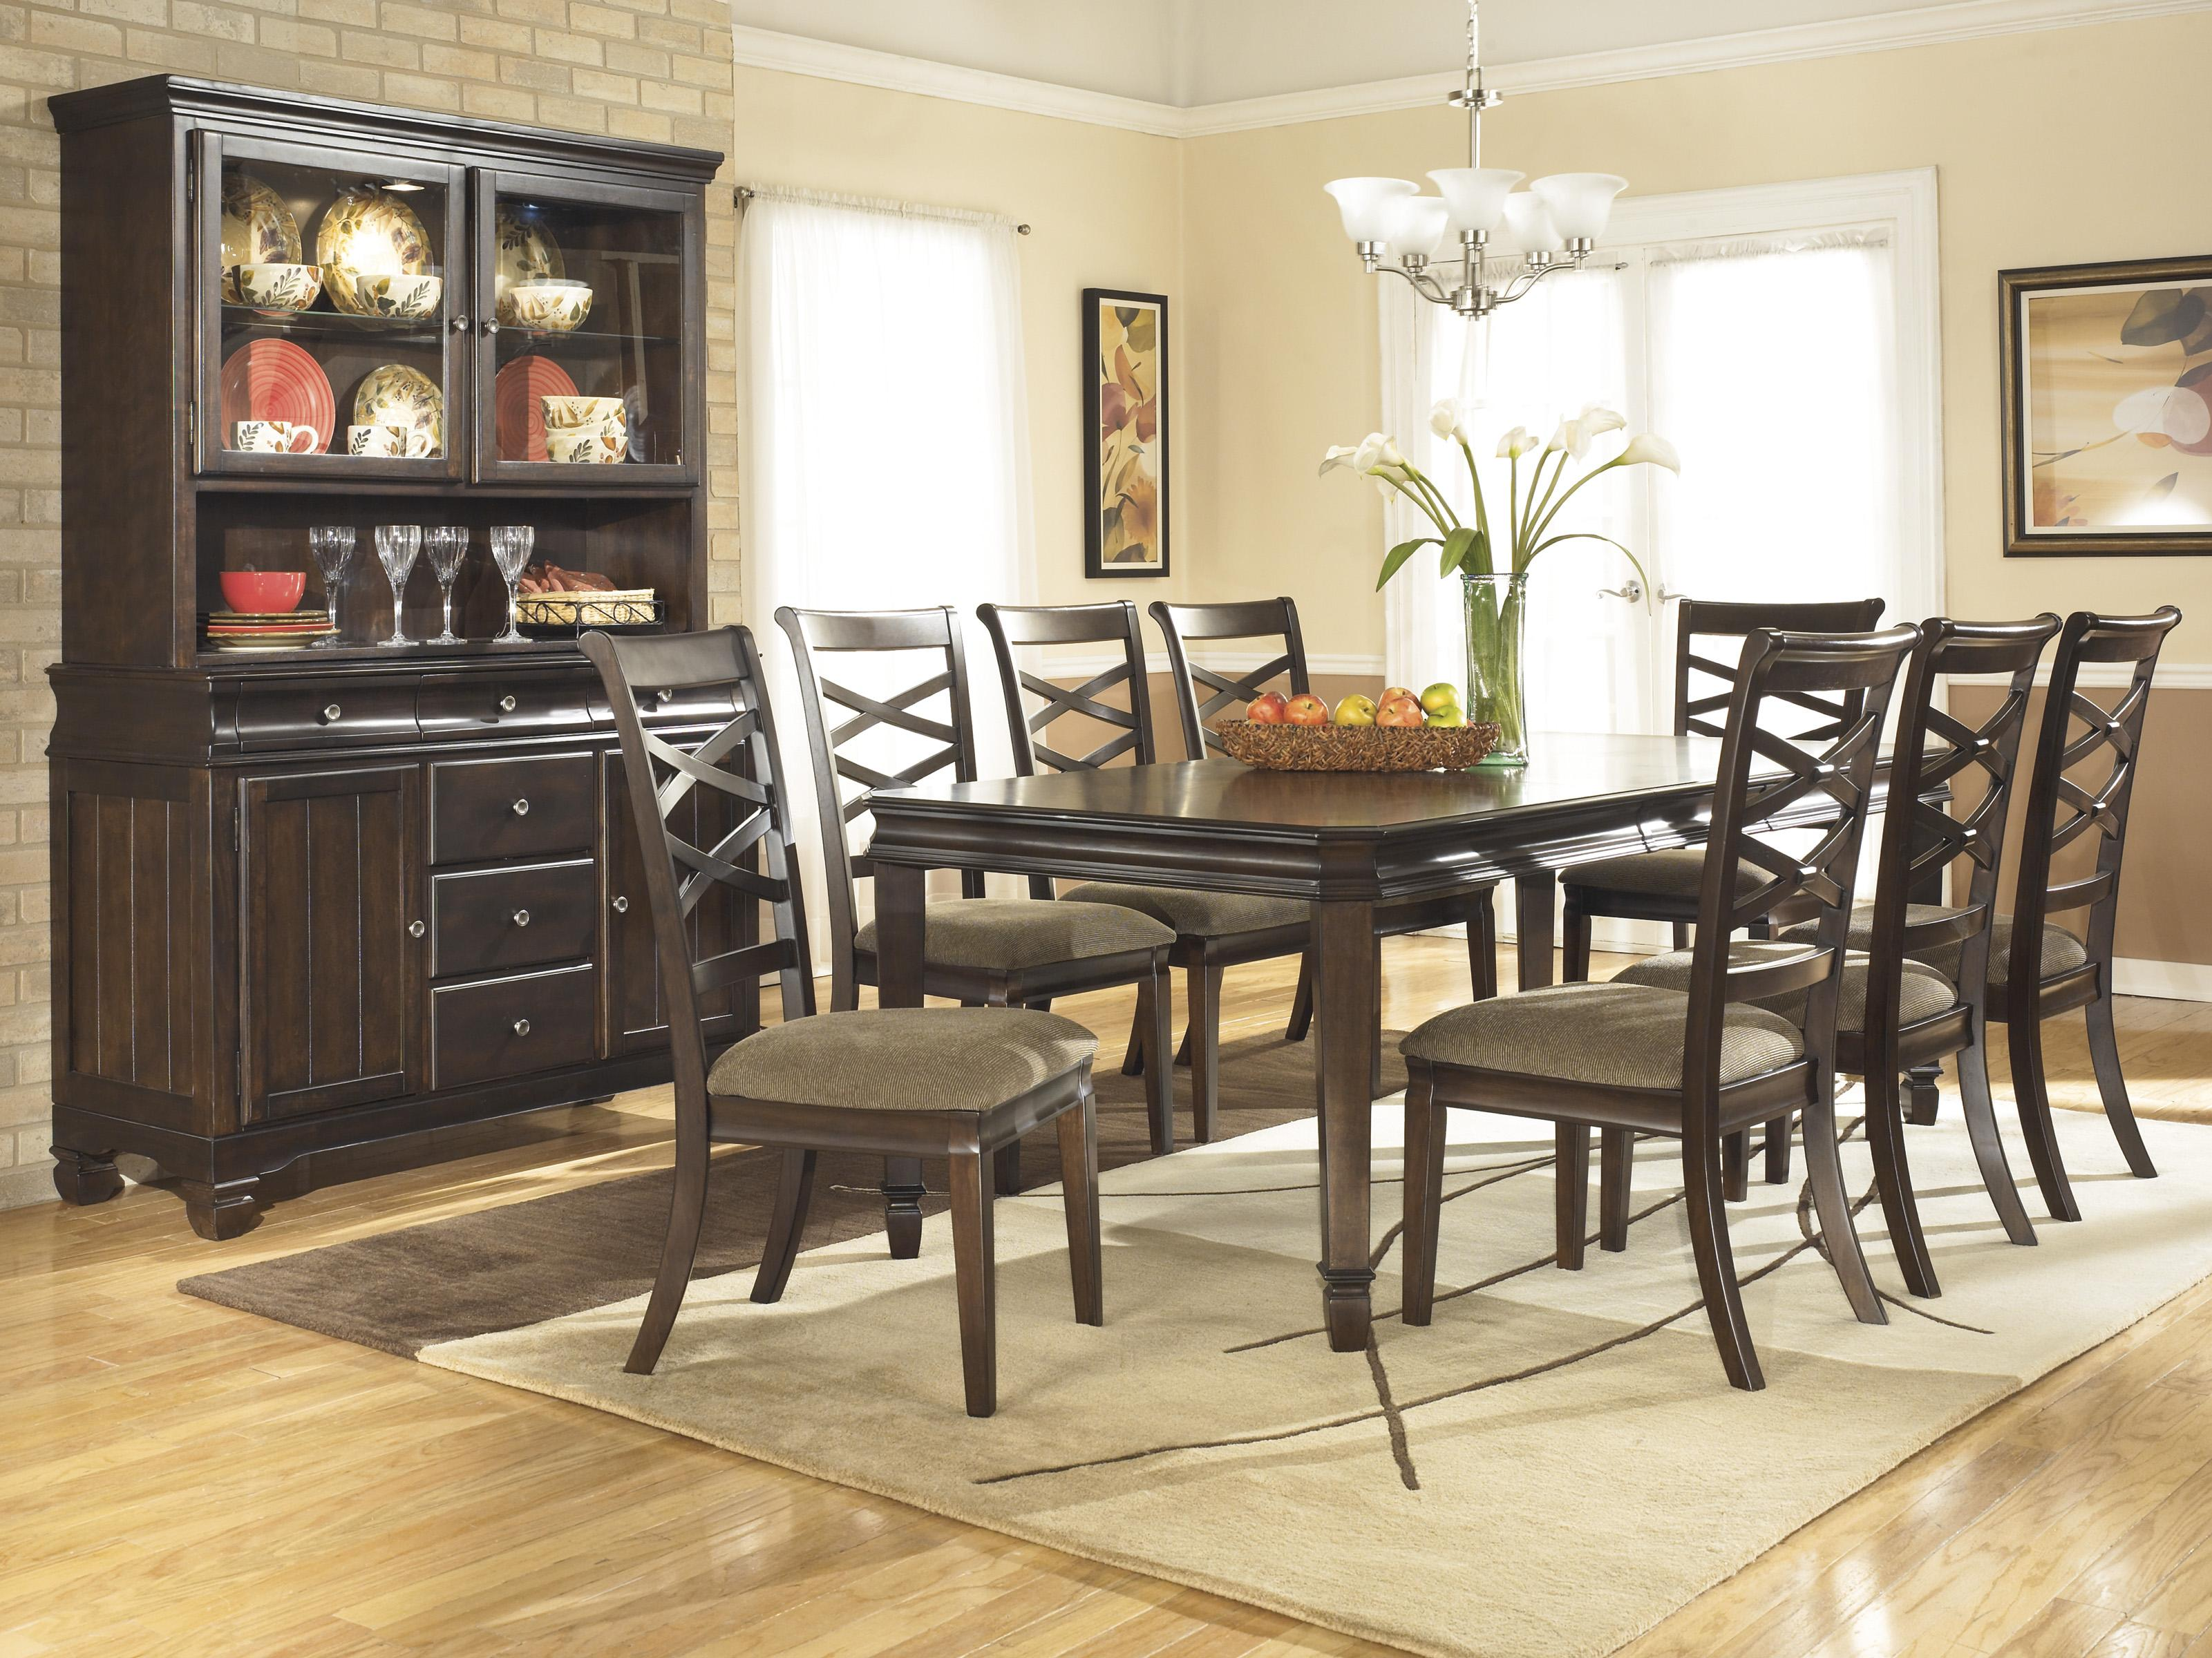 Ashley Furniture Hayley Casual Dining Room Group - Item Number: D480 Dining Room Group 4